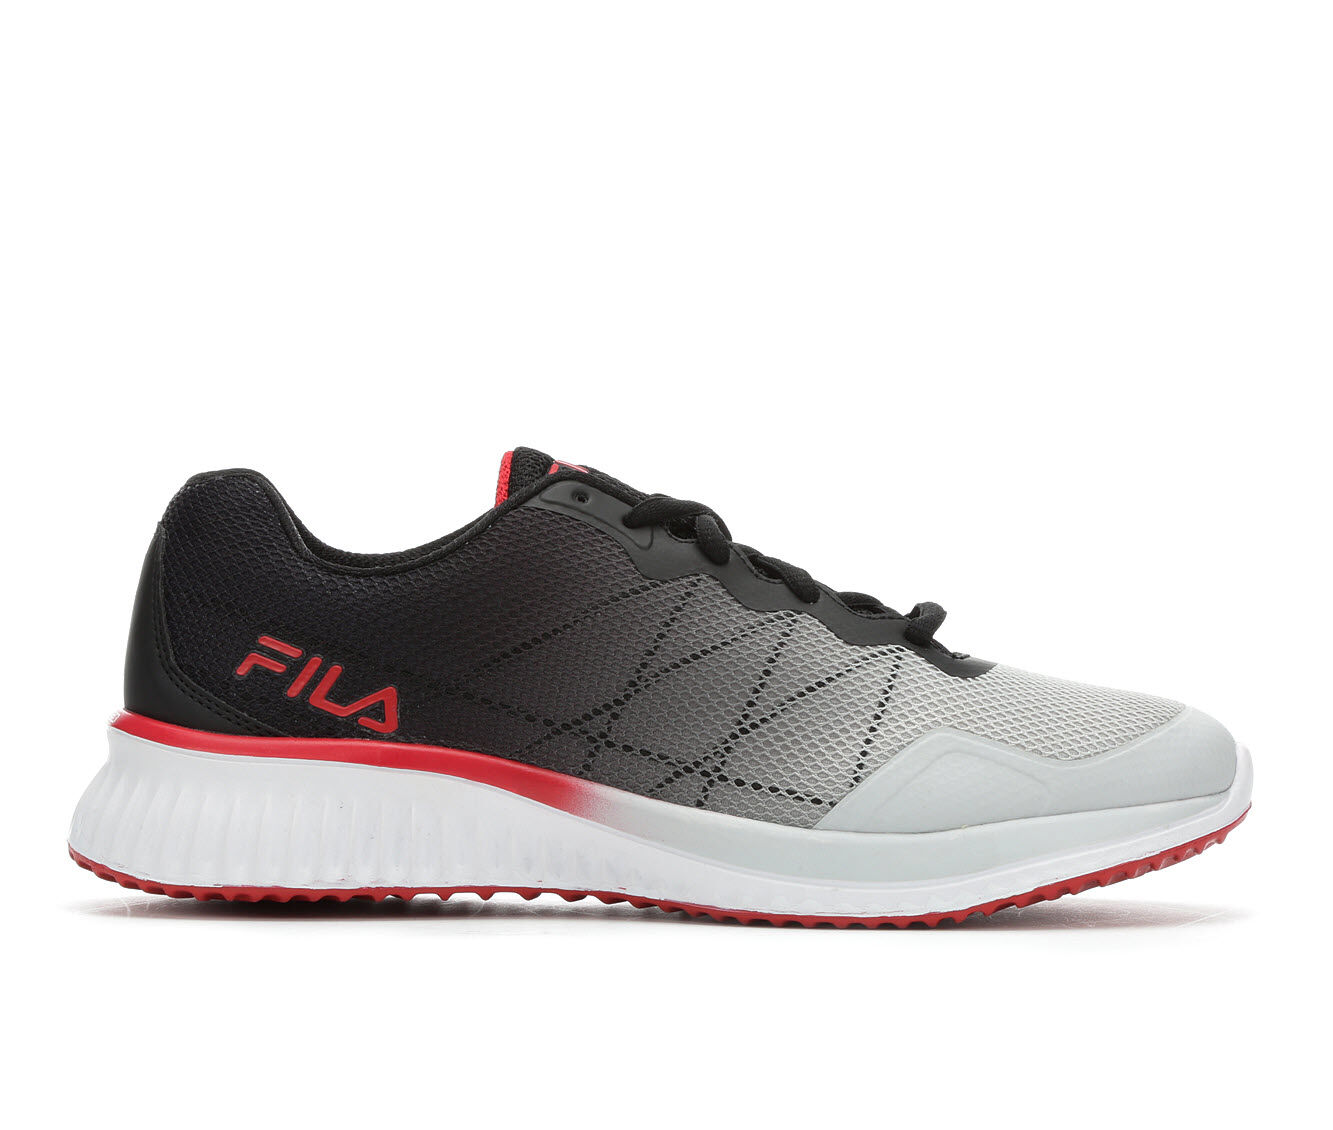 choose authentic Men's Fila Memory GeoSonic Running Shoes Gry/Blk/Red